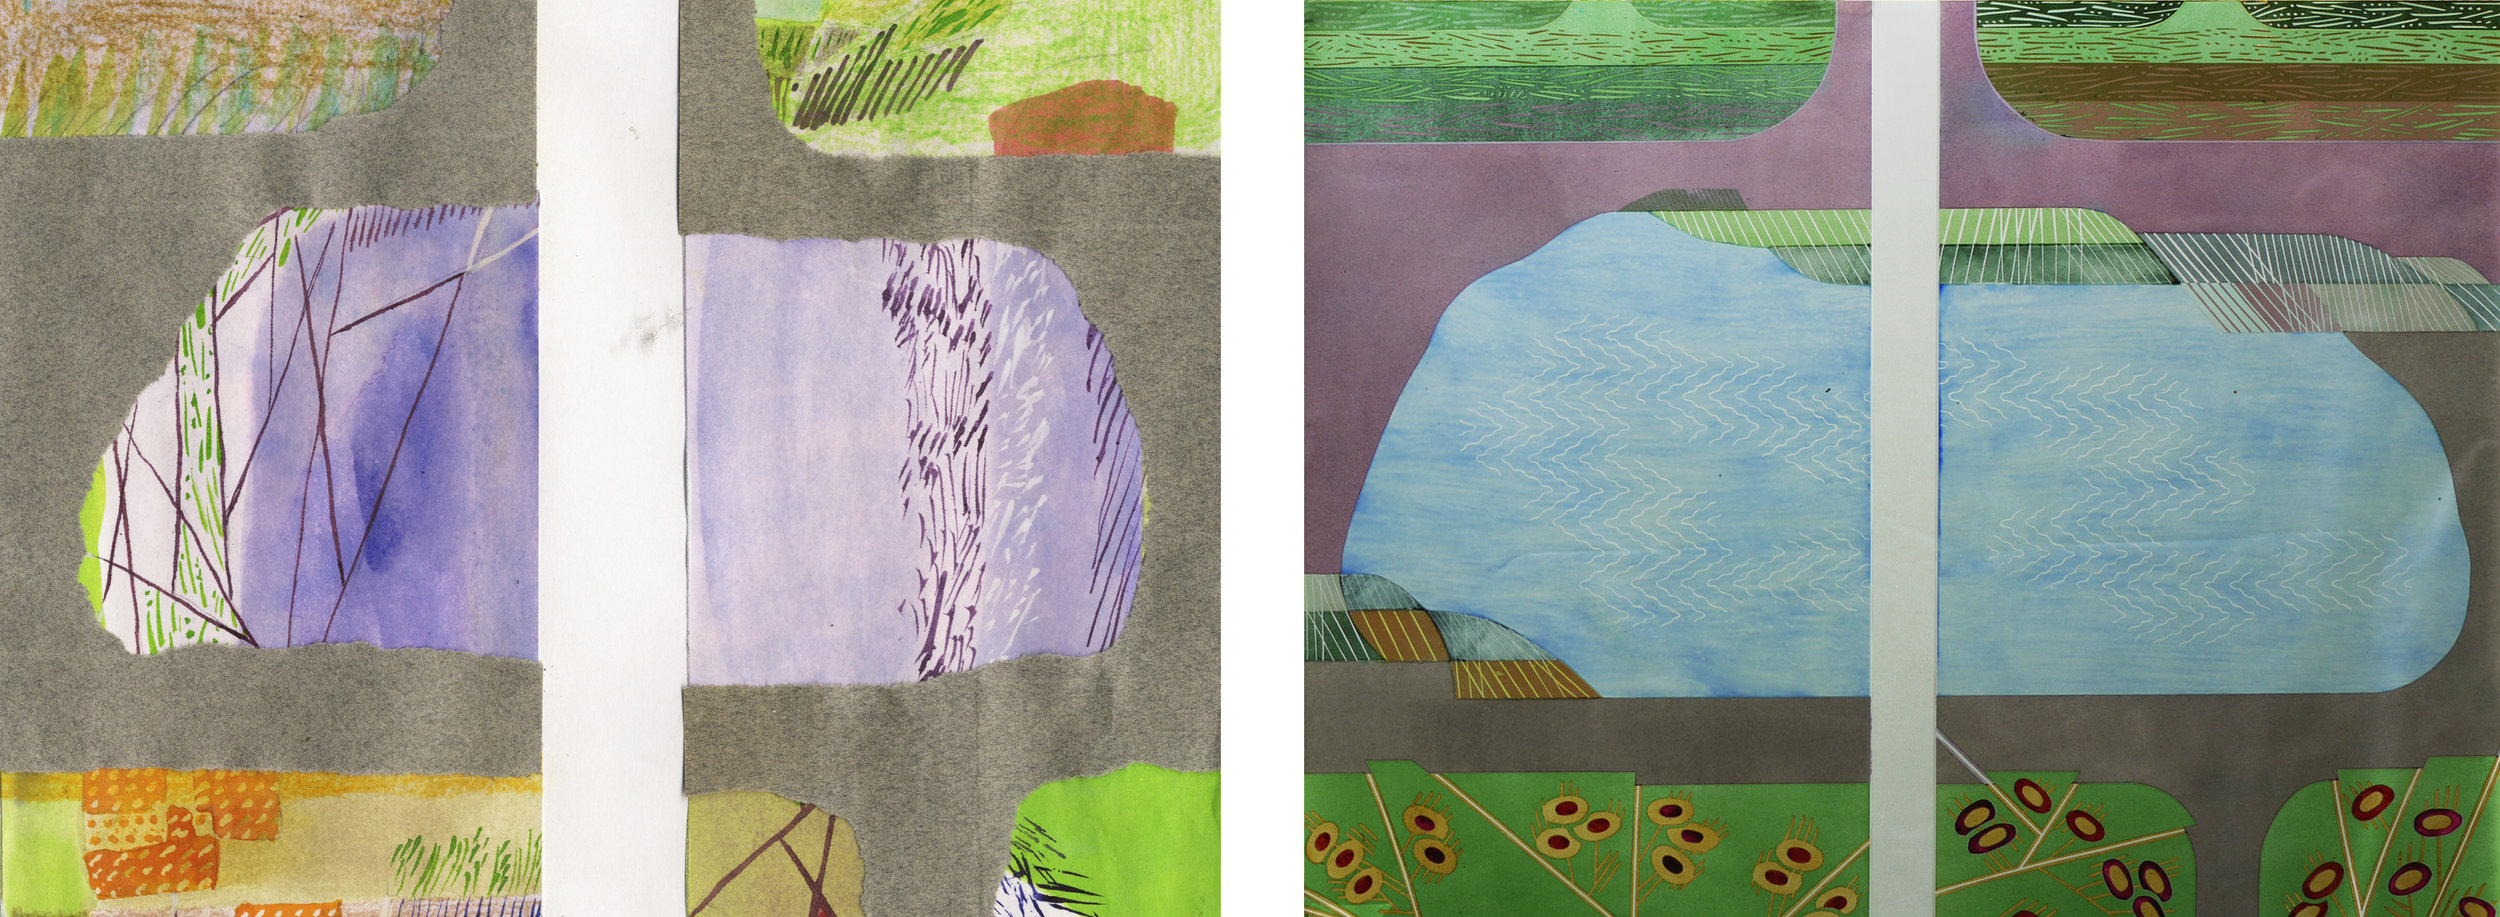 Central section of panels 3 & 4. Left collage, right glass.